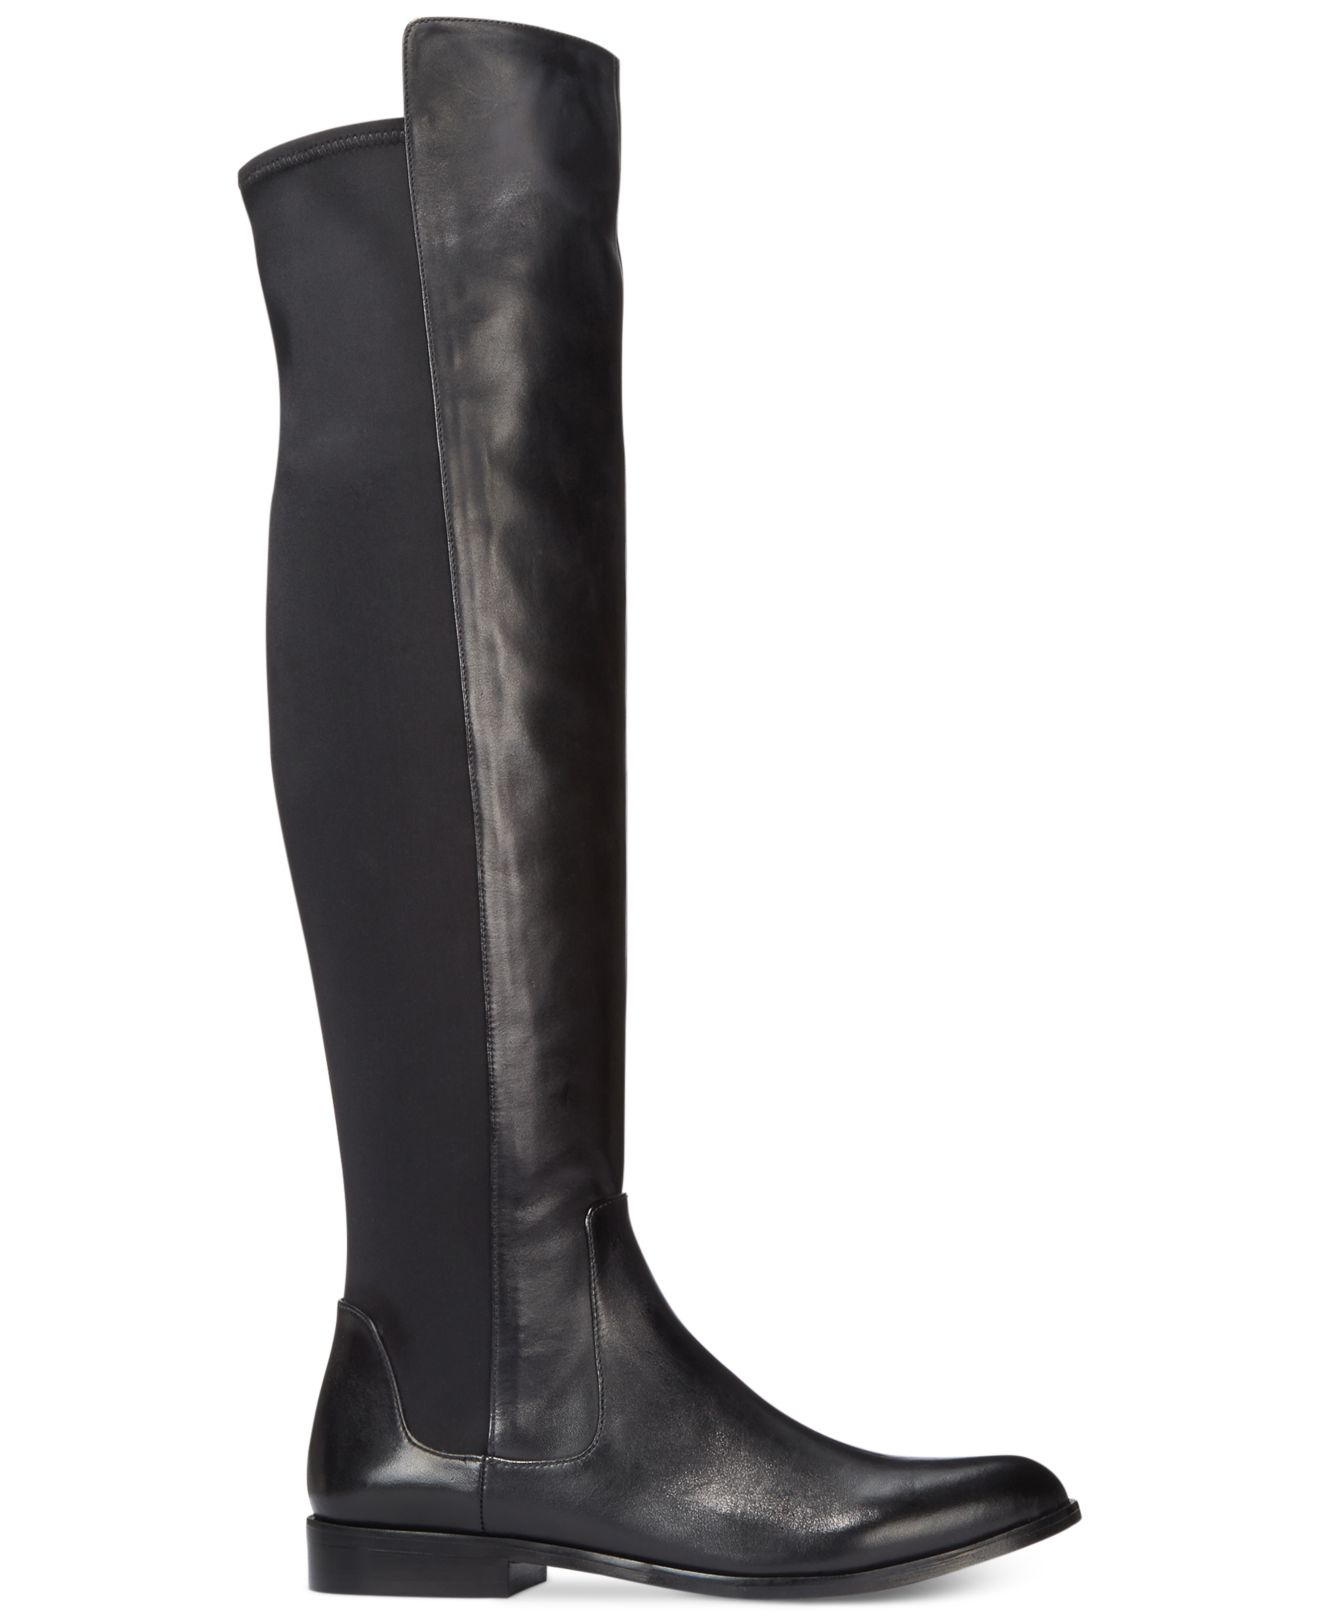 Womens tall black dress boots – Dress online uk